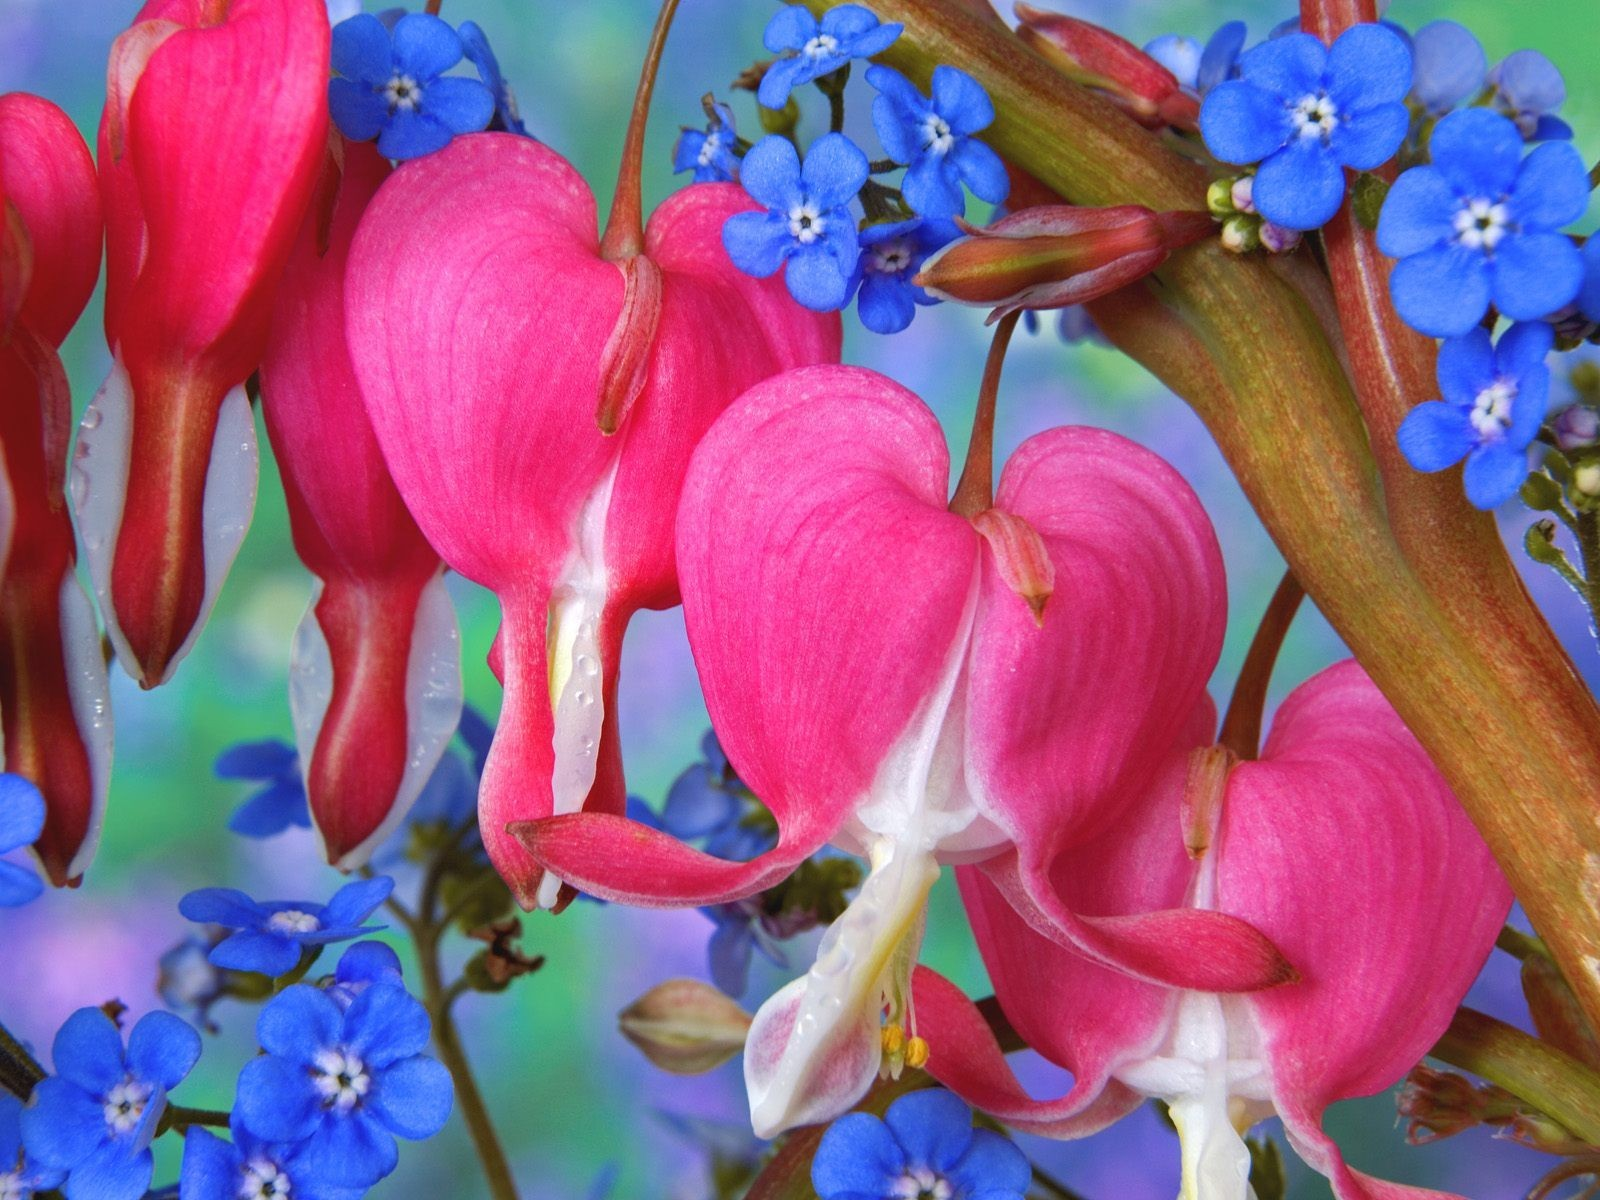 Flowers Forget-me-nots Bleeding Hearts HD Wallpaper